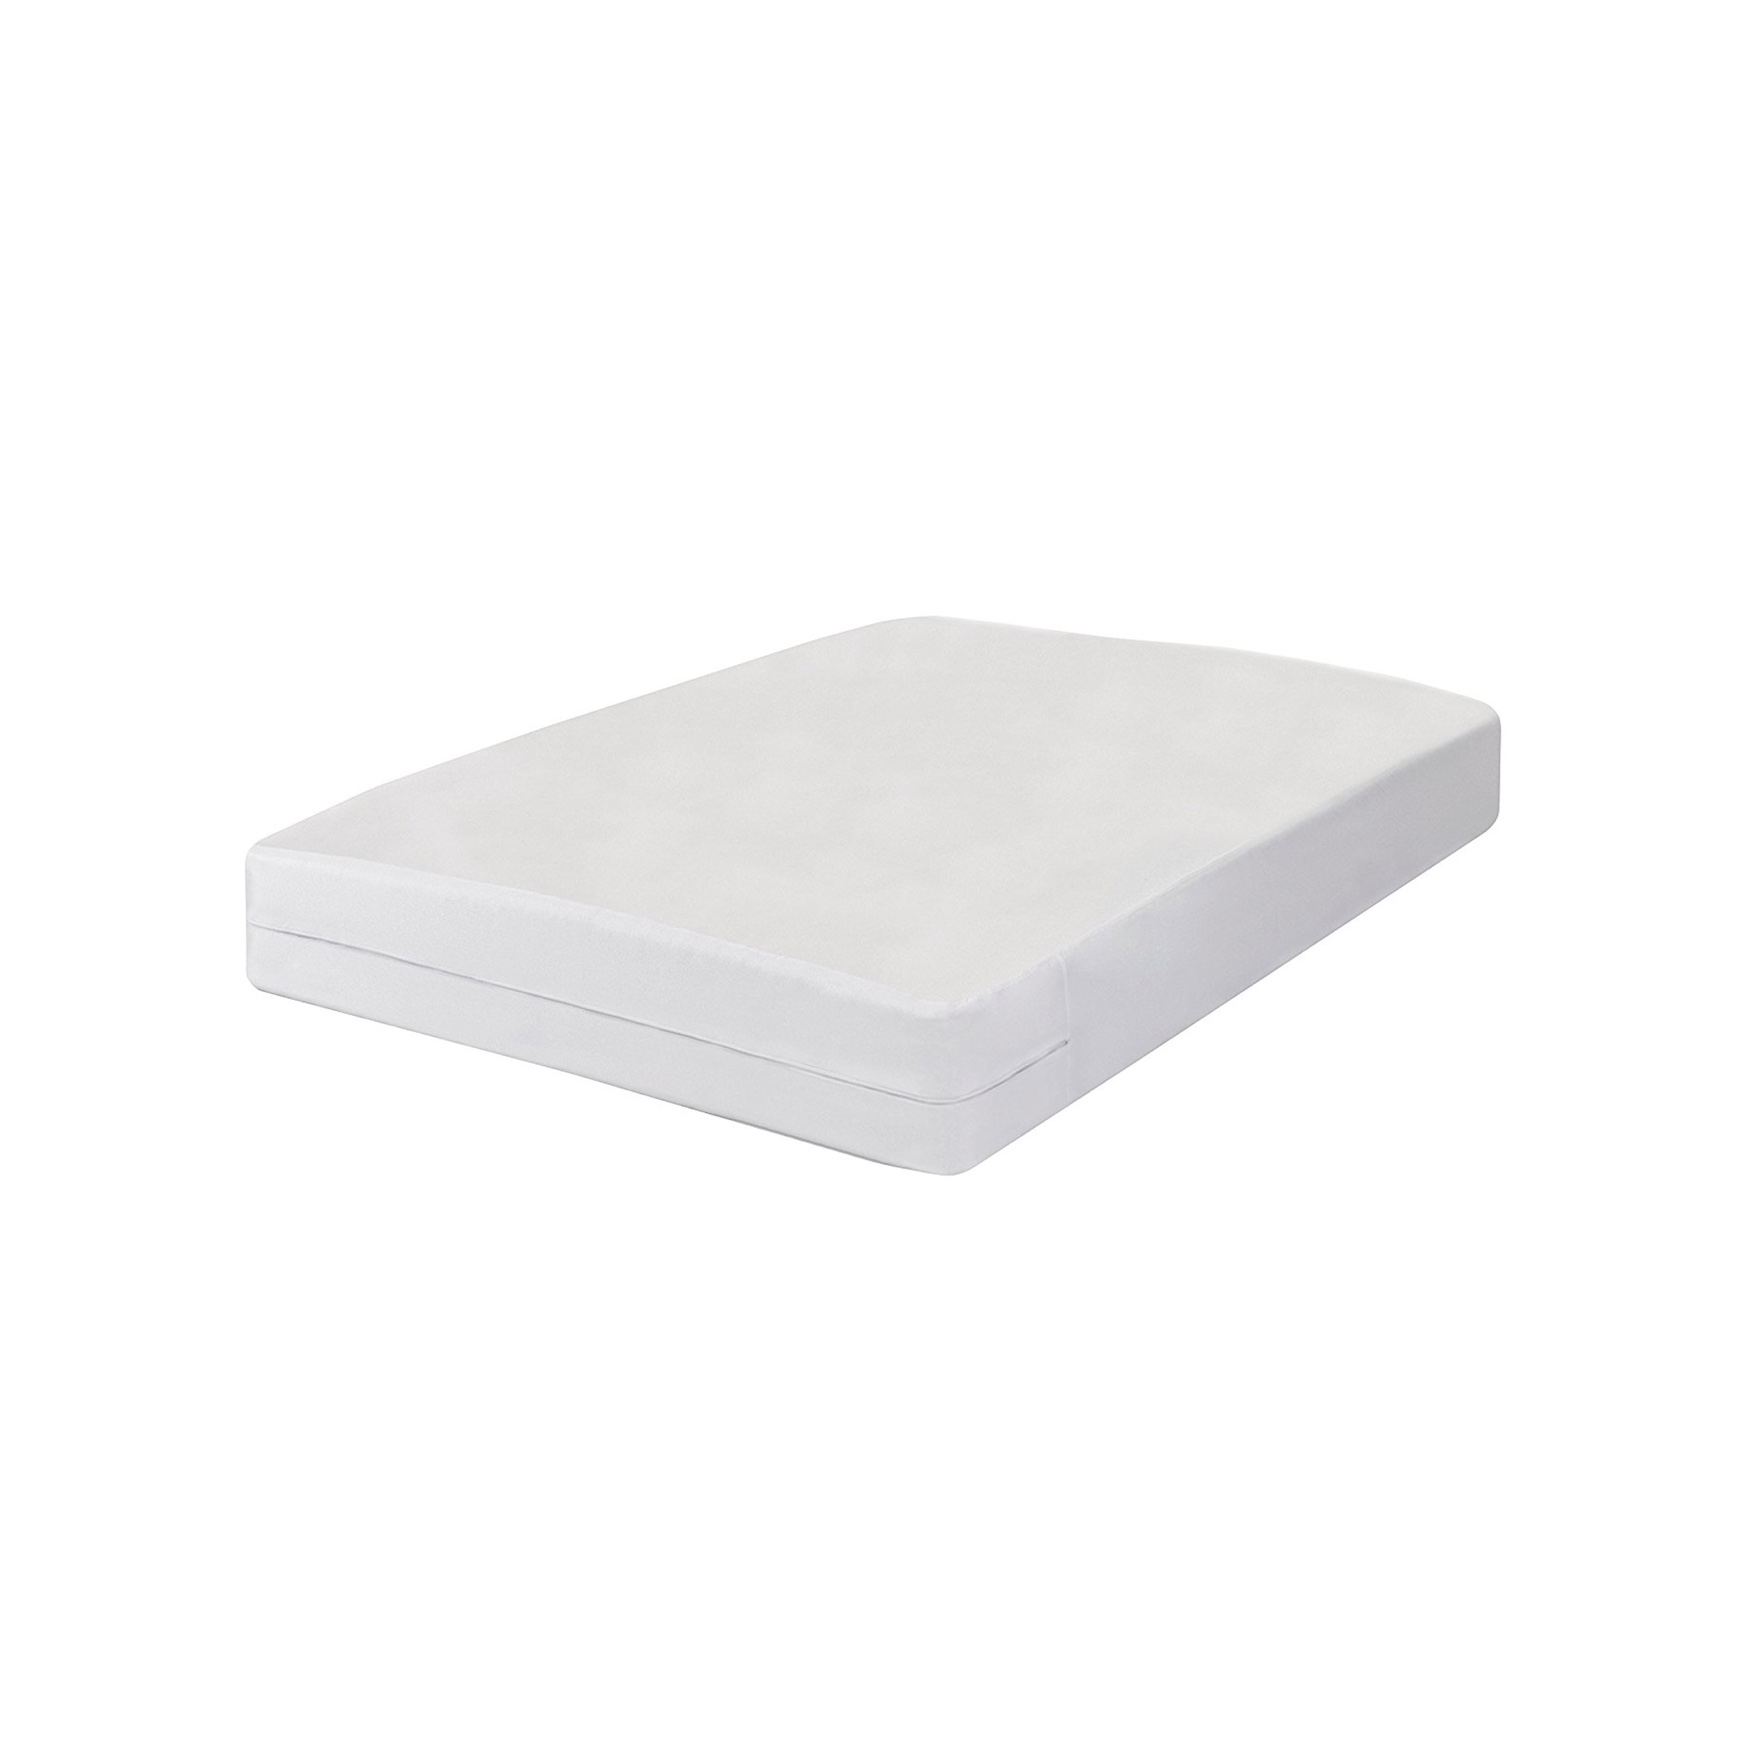 Dust Buster Allergy Relief Breathable Mattress Protector with Stain Release,